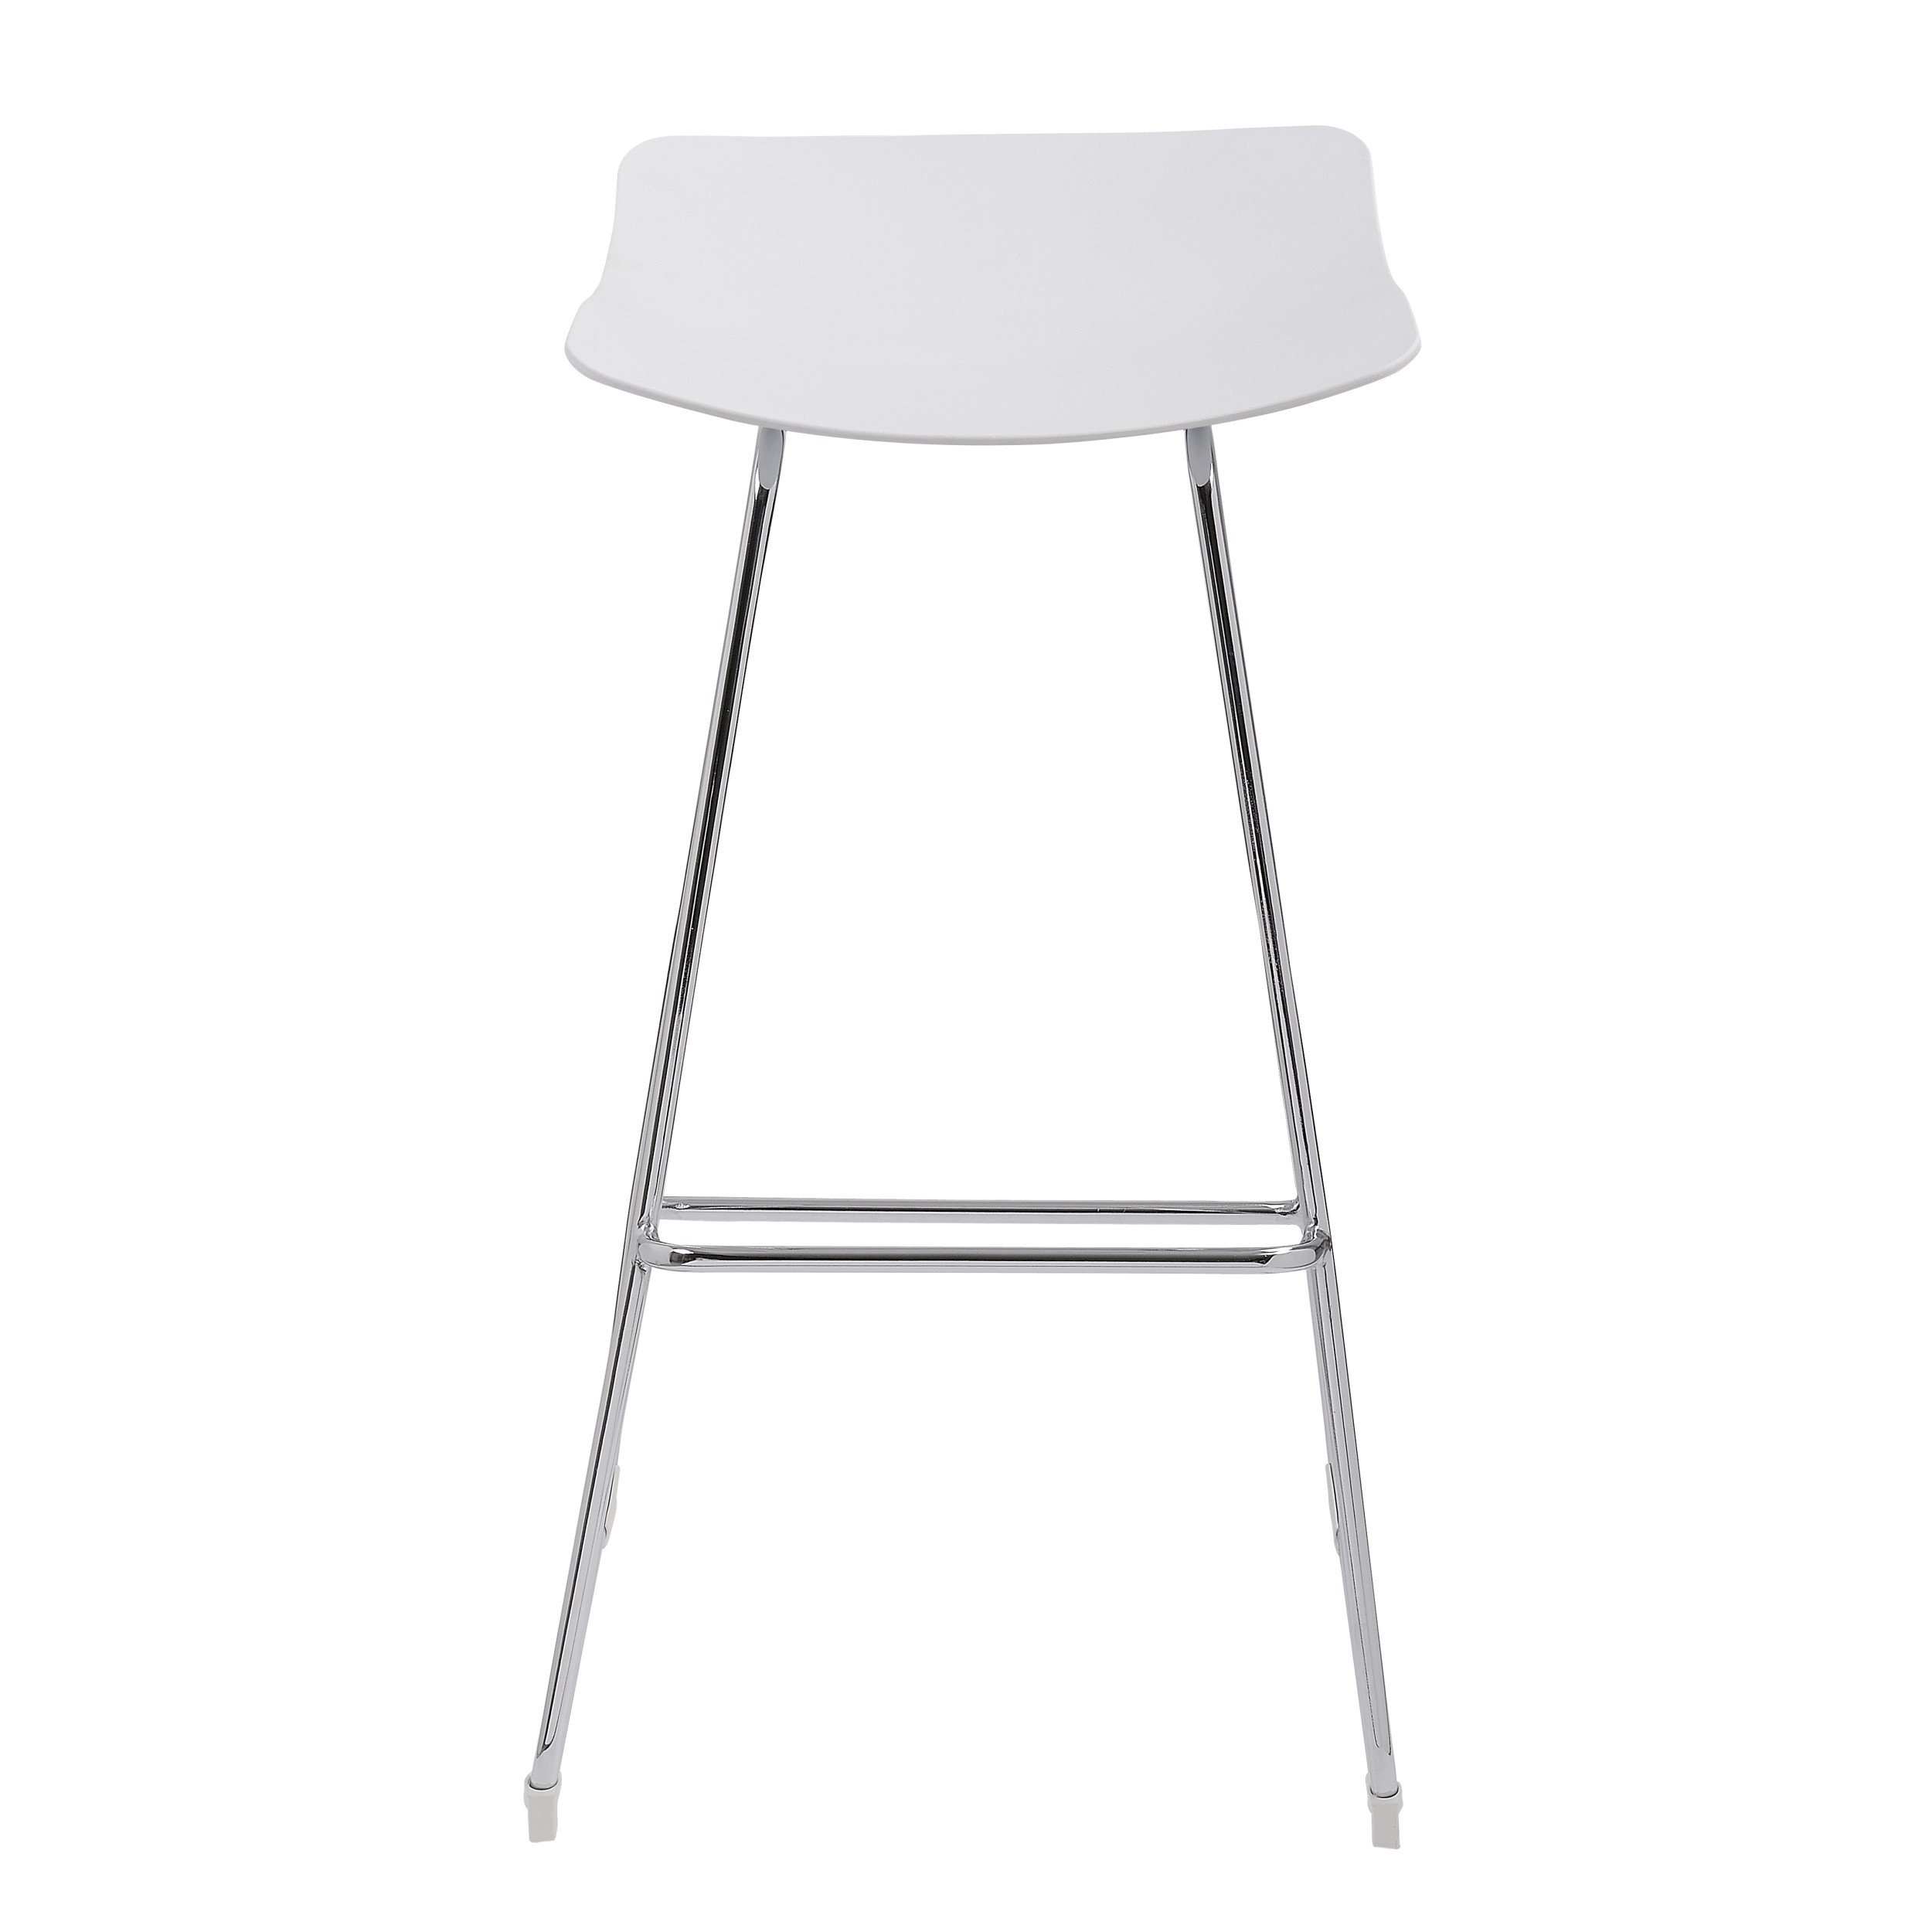 Emerald Home Neo White 30'' Bar Stool with Backless Molded Plastic Seat And Chrome Base, Set of Two by Emerald Home Furnishings